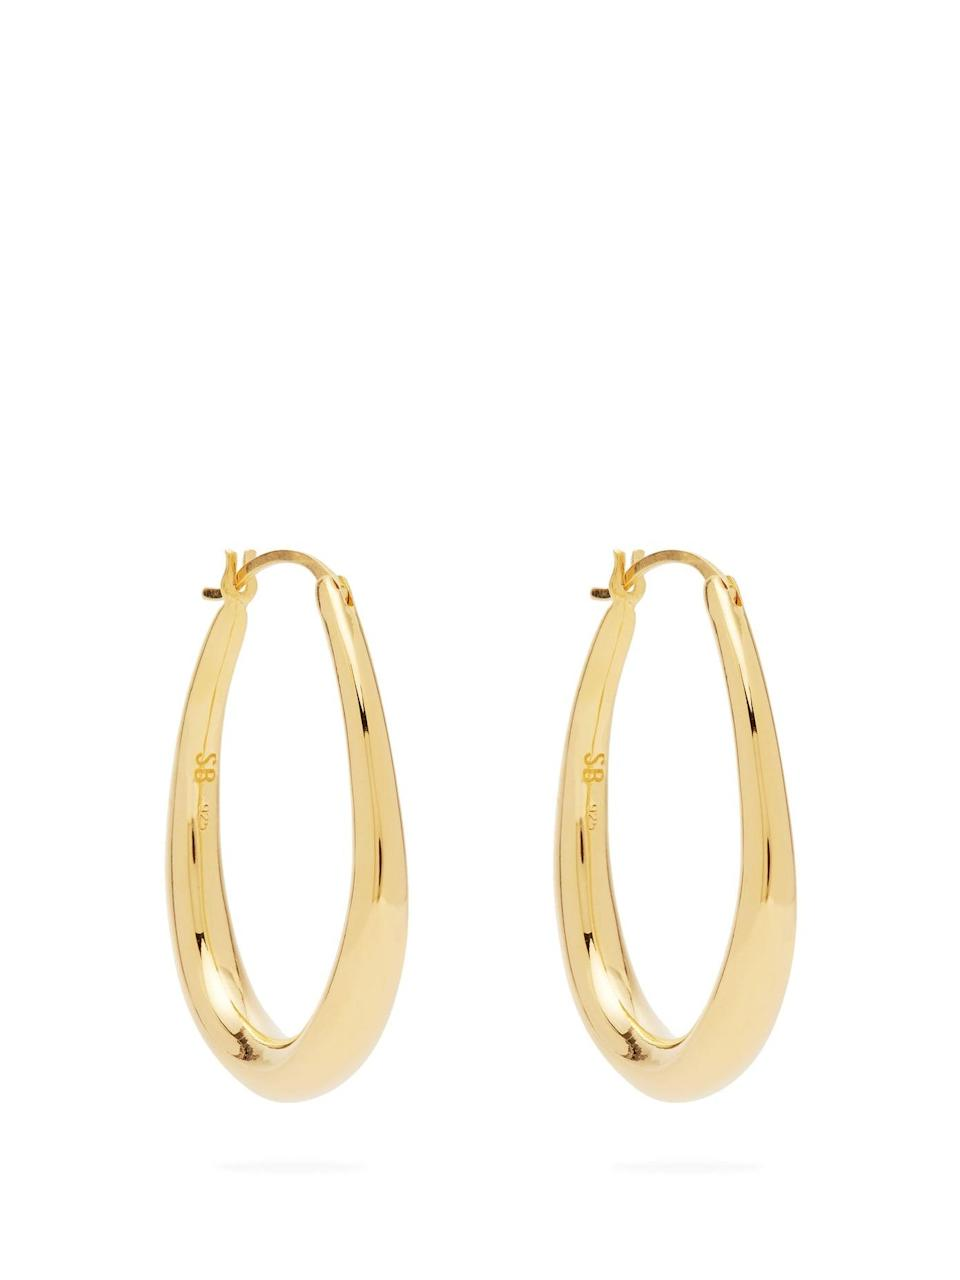 """I could write something really wordy and pseudo-intellectual here, an ode to these hoops. But let's be real, I just like gold hoops. I can never have enough. Sophie Buhai has, once again, nailed the perfect statement hoop which means I can be super lazy and just wear jeans and a white T-shirt while still looking like I've made an effort. Simple and effective. Not sure I can justify them right now because I have approx 15 pairs of gold hoops in my possession but…if I could...I would. <br><br><strong>Sophie Buhai</strong> Tiny Egg Gold Vermeil Hoops, $, available at <a href=""""https://www.matchesfashion.com/products/1339018?"""" rel=""""nofollow noopener"""" target=""""_blank"""" data-ylk=""""slk:Matches Fashion"""" class=""""link rapid-noclick-resp"""">Matches Fashion</a>"""